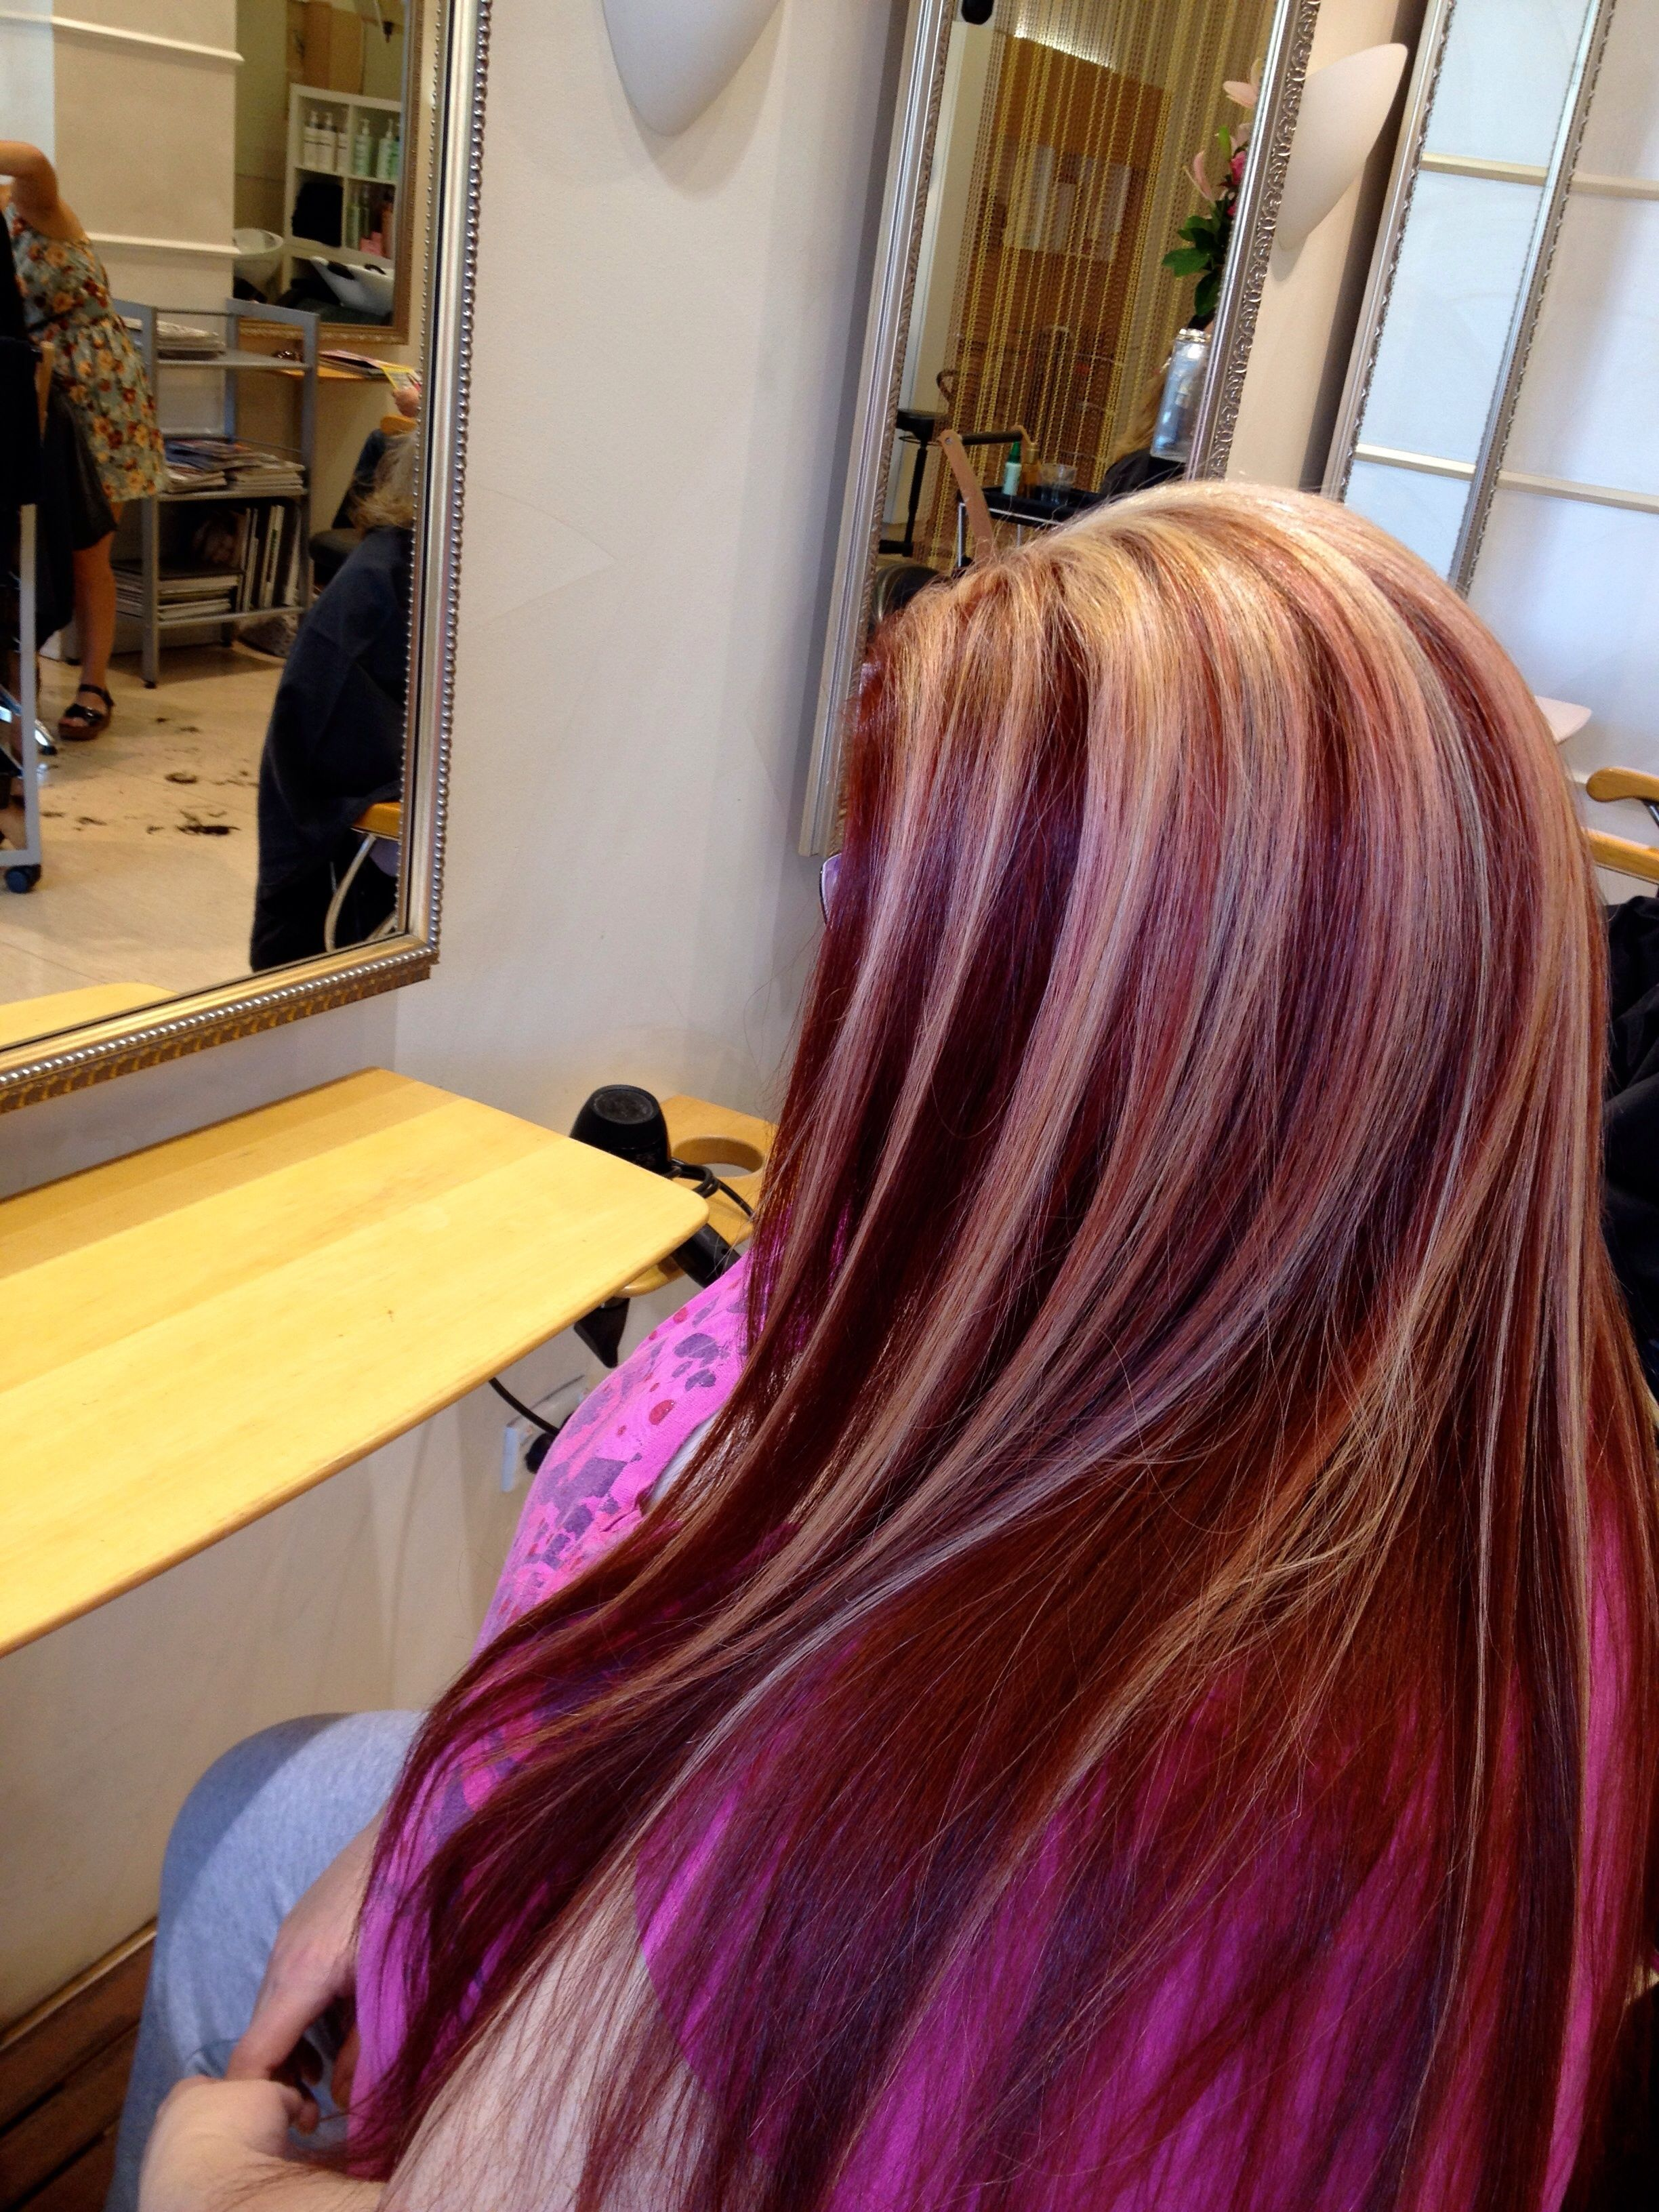 Blonde highlights ideas pinterest - Red Hair With Blonde Highlights Love